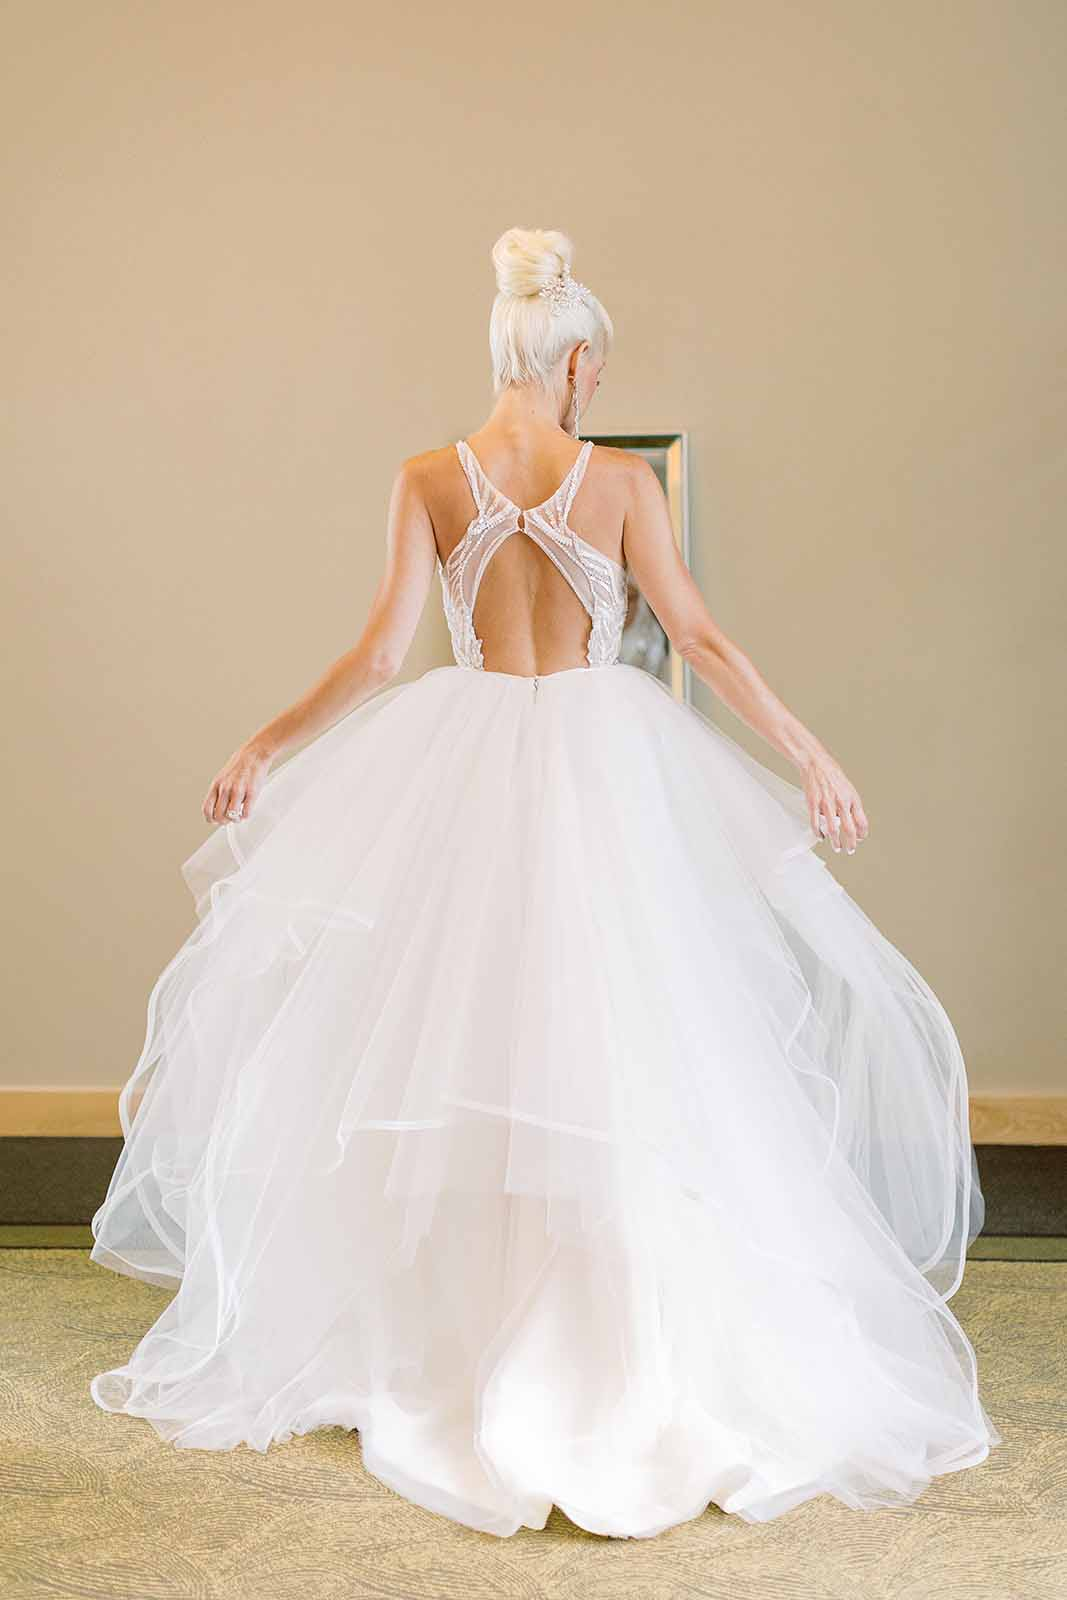 Formal wedding photo with back of the wedding dress detail, large white ballgown style dress